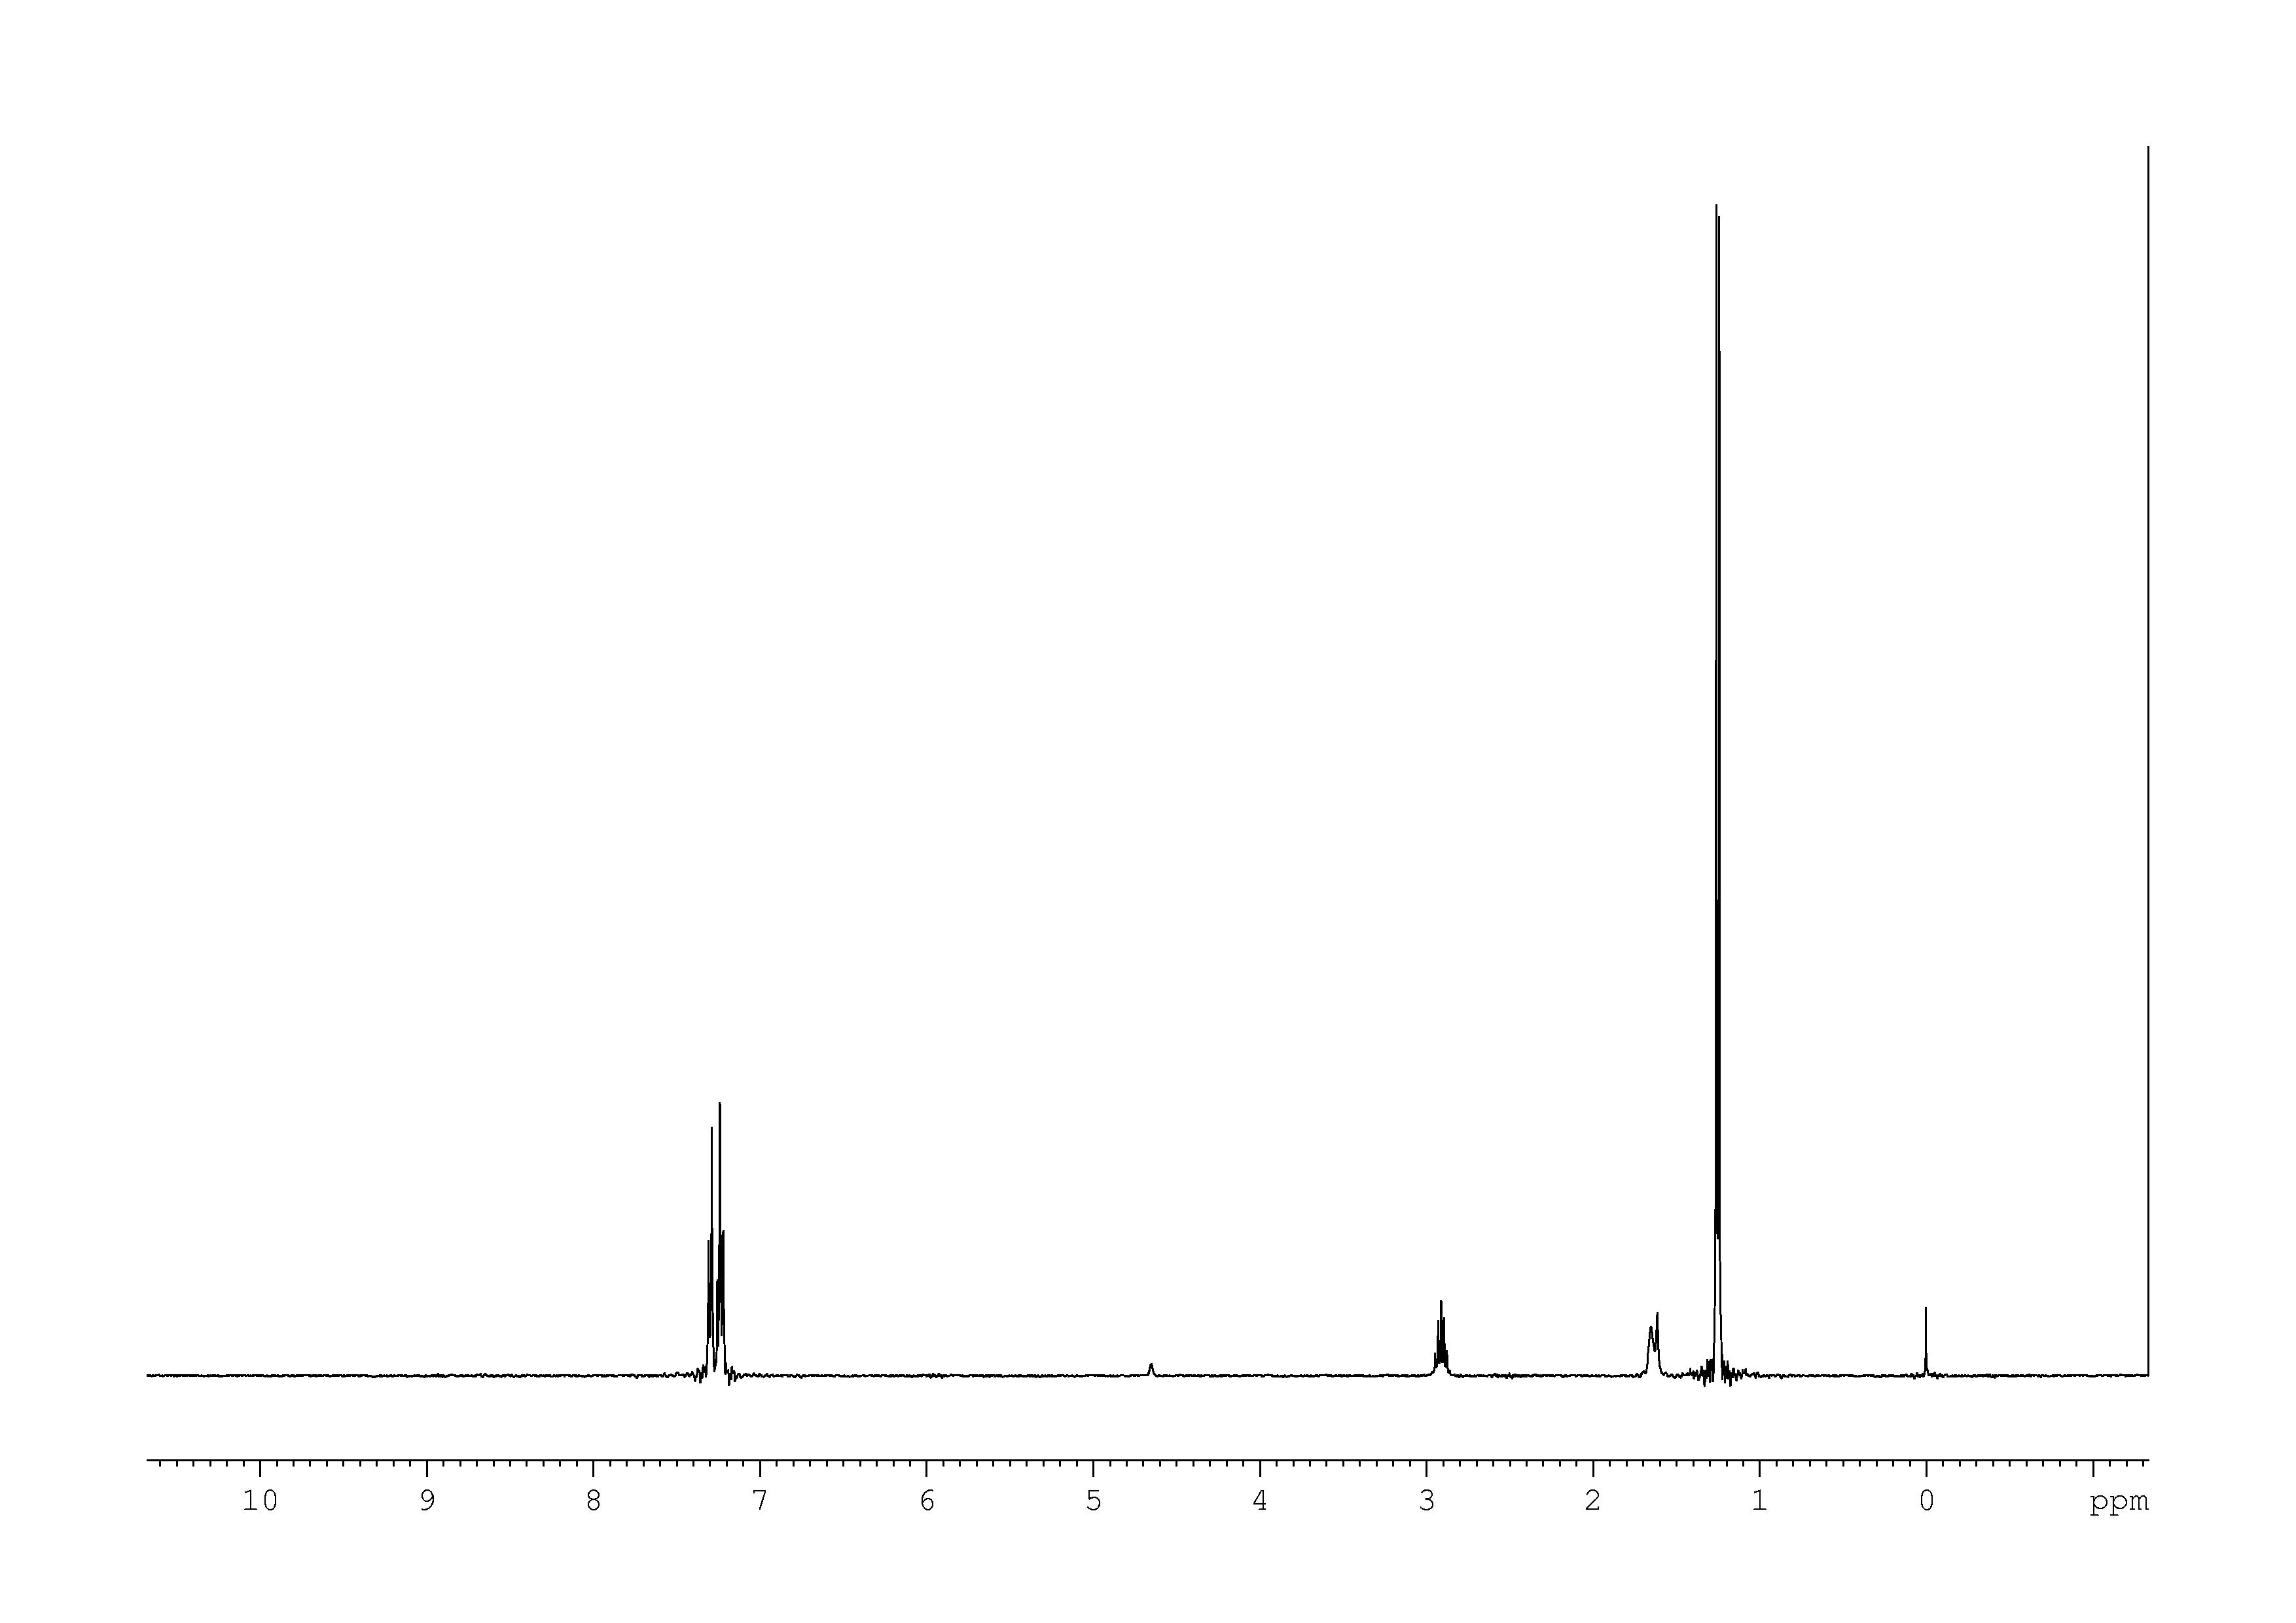 1D 1H, n/a spectrum for 4-isopropylbenzyl alcohol